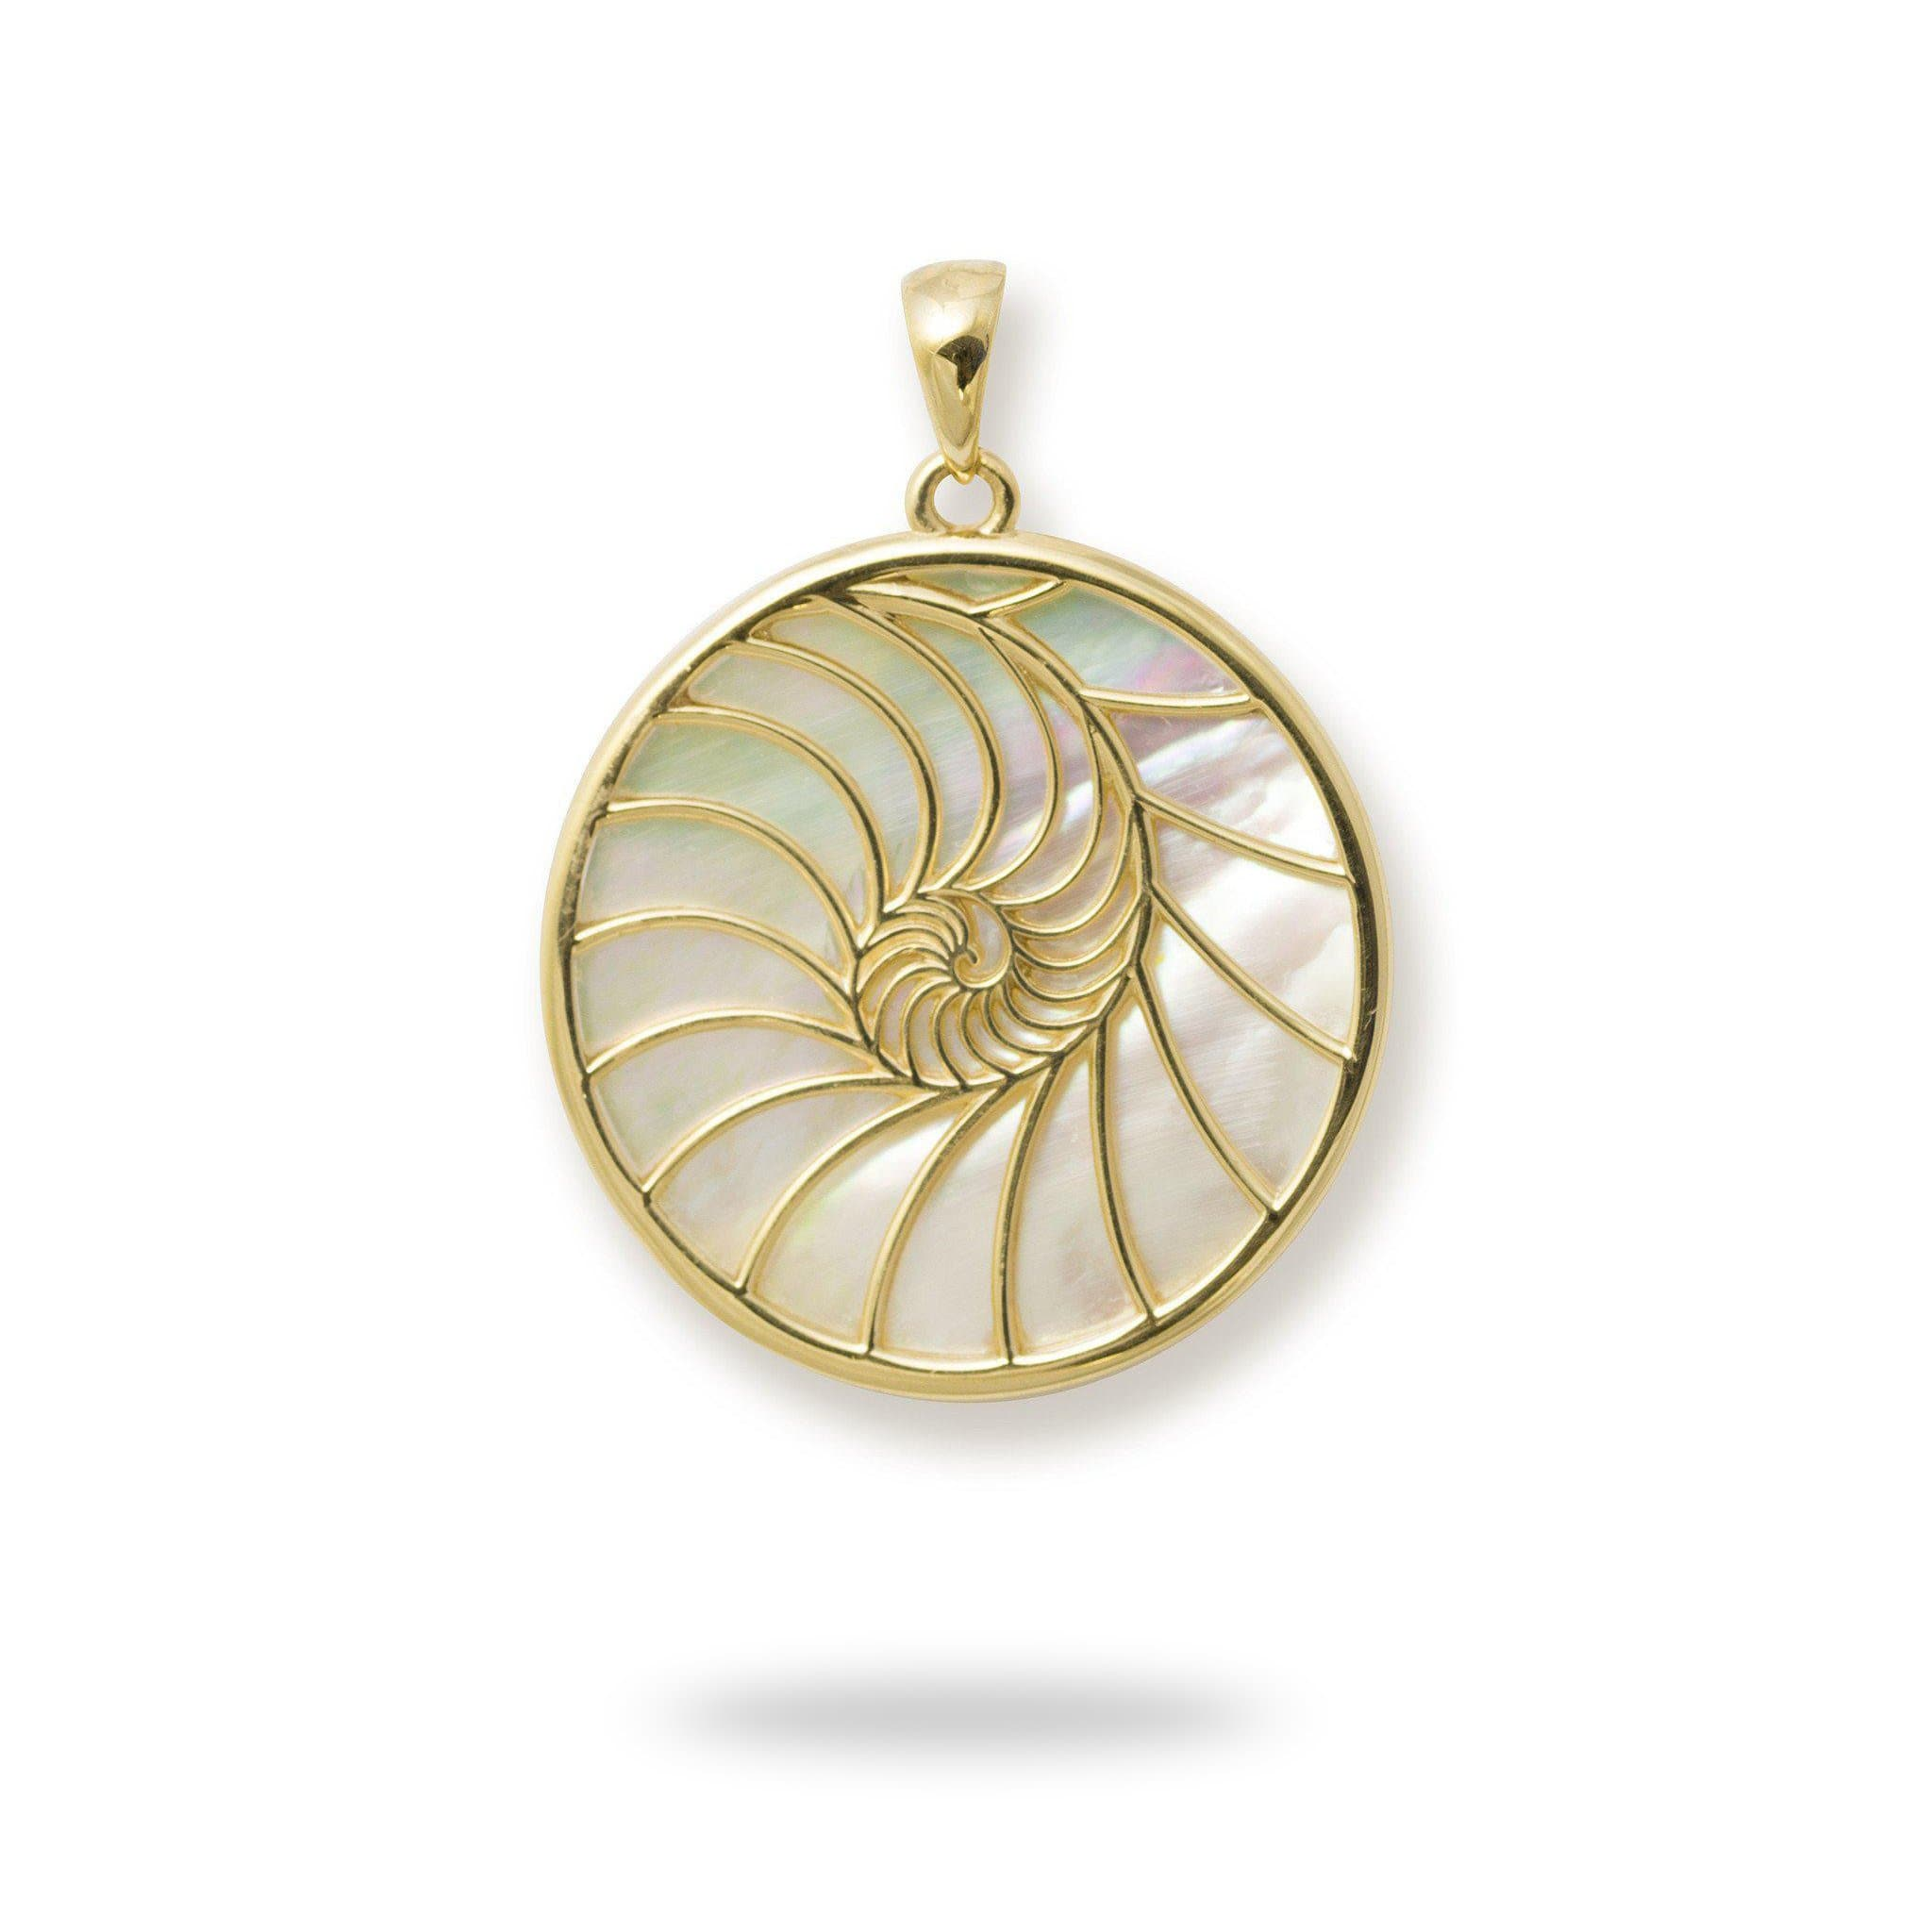 d9413e4590b42 Shop Mother of Pearl Jewelry Online at Maui Divers